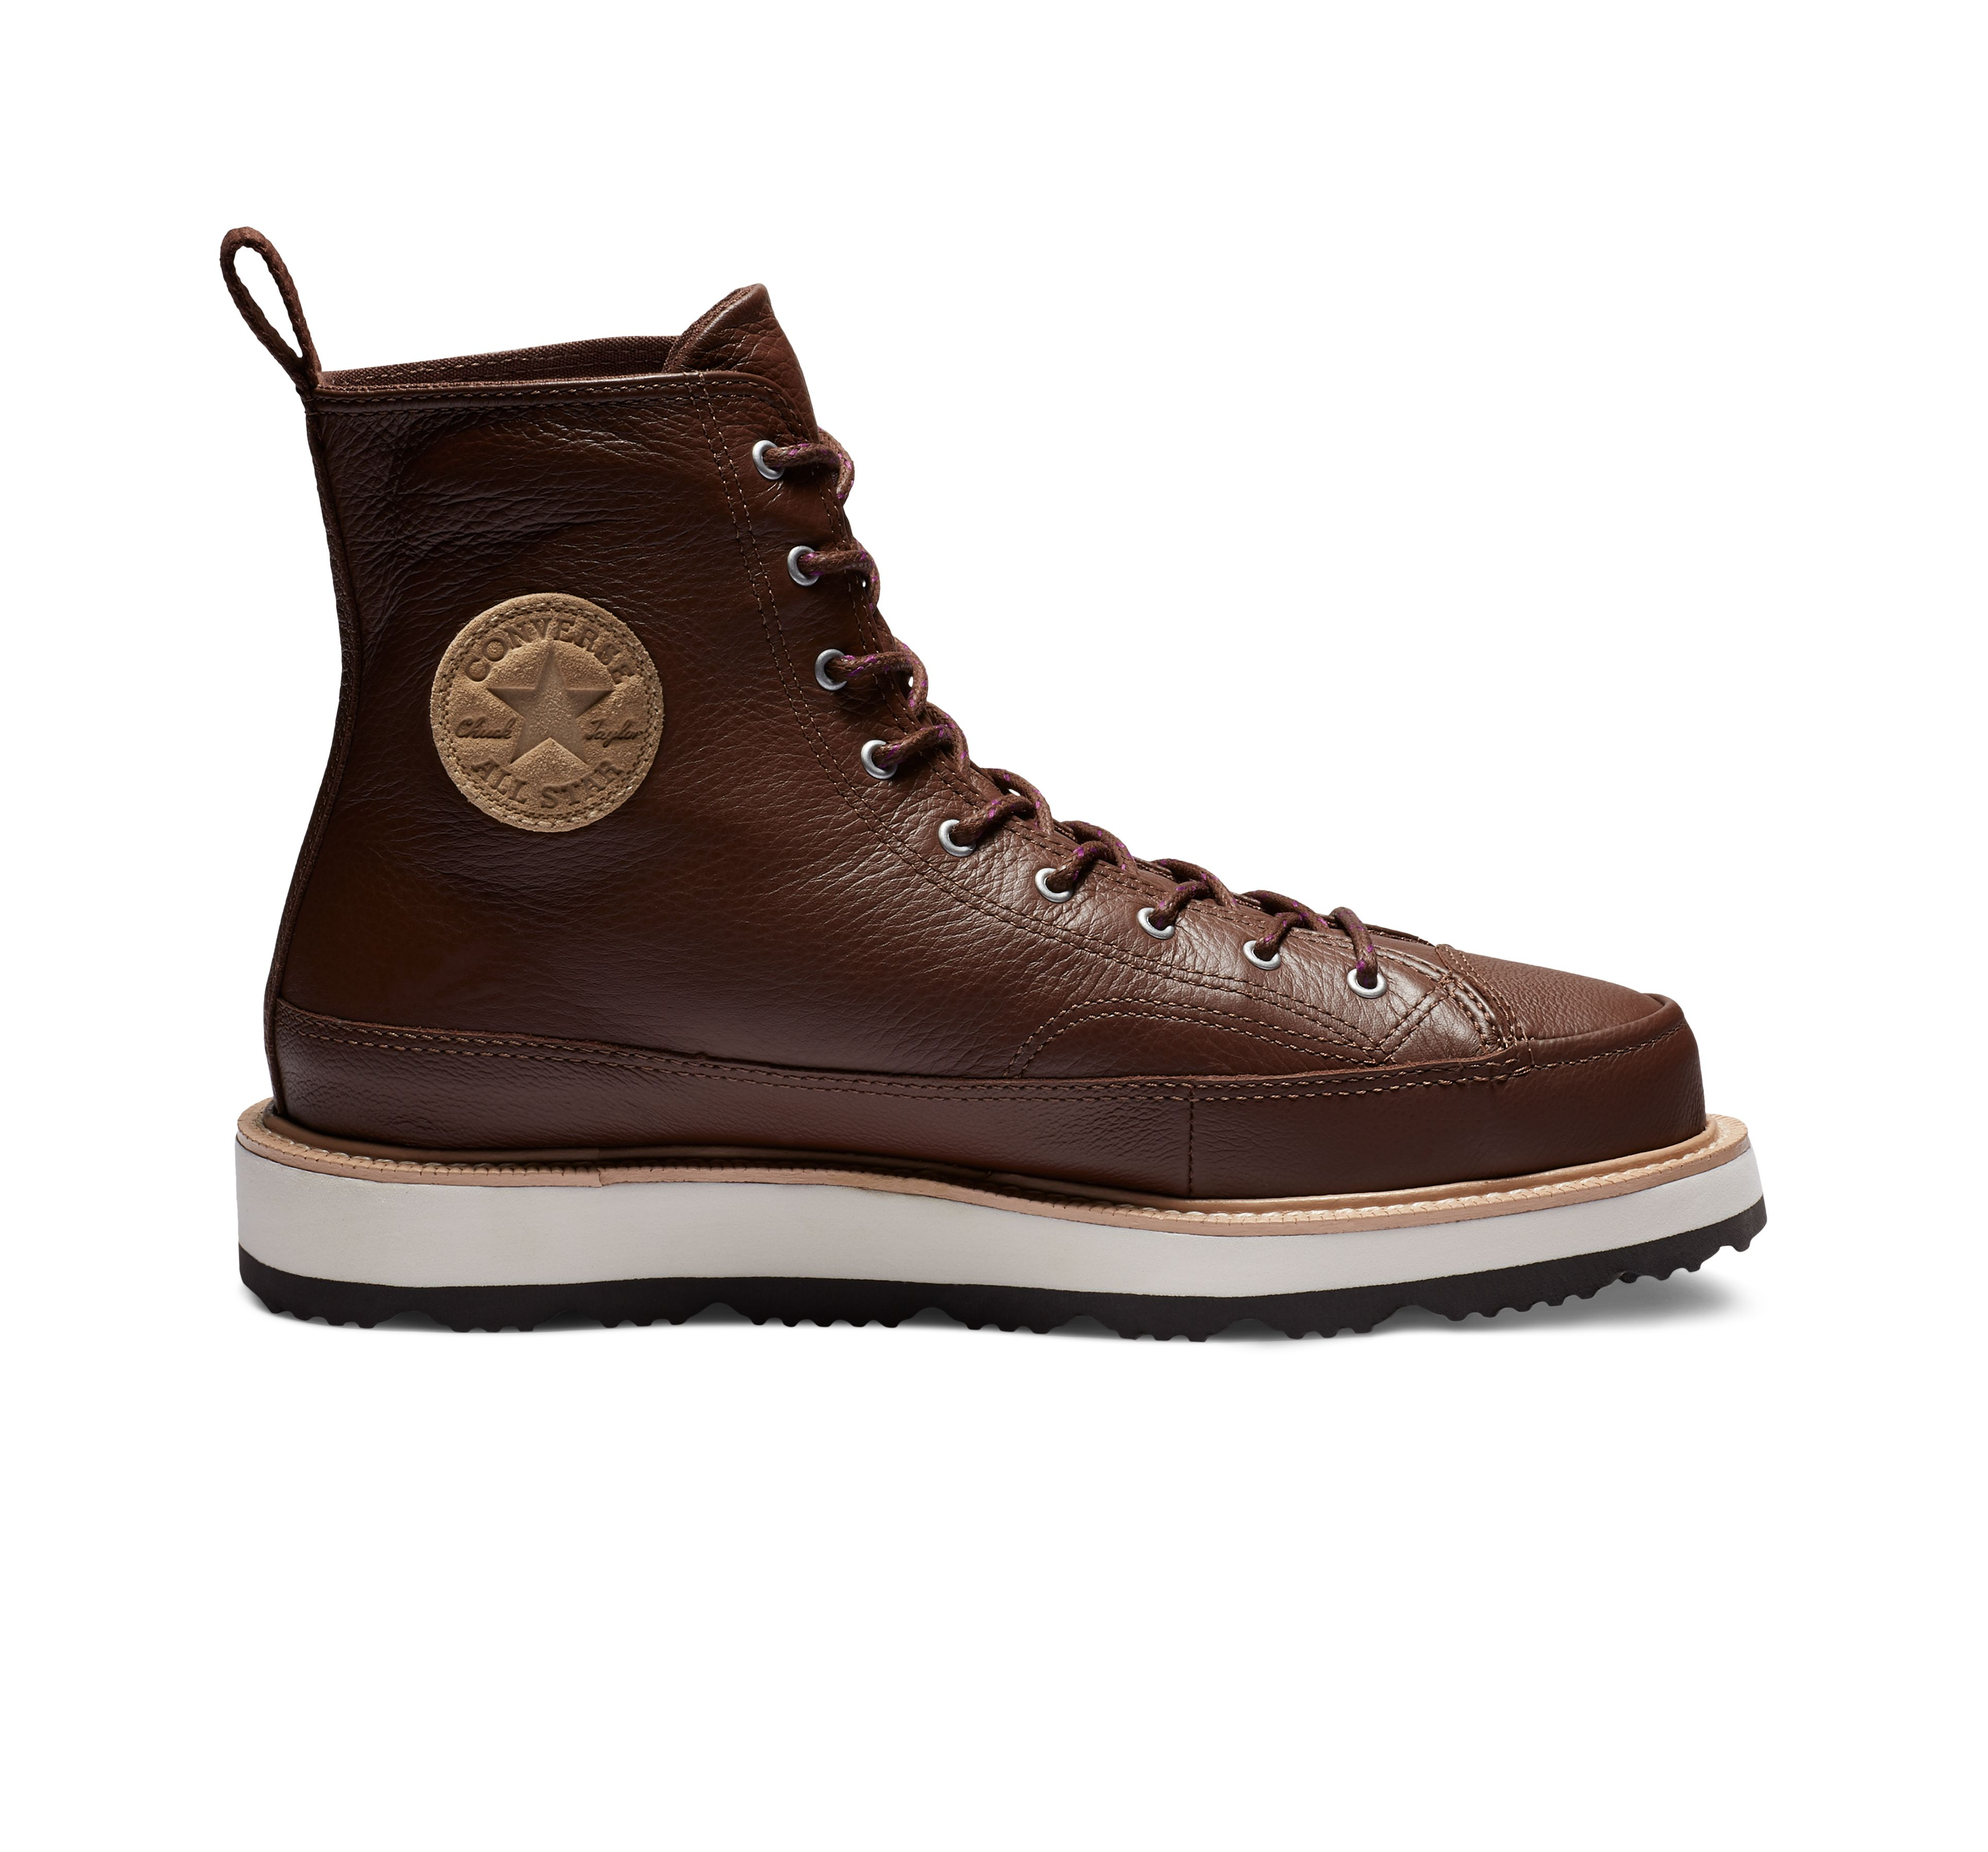 Crafted Boot Chuck Taylor | Boots, Star boots, Chuck taylors